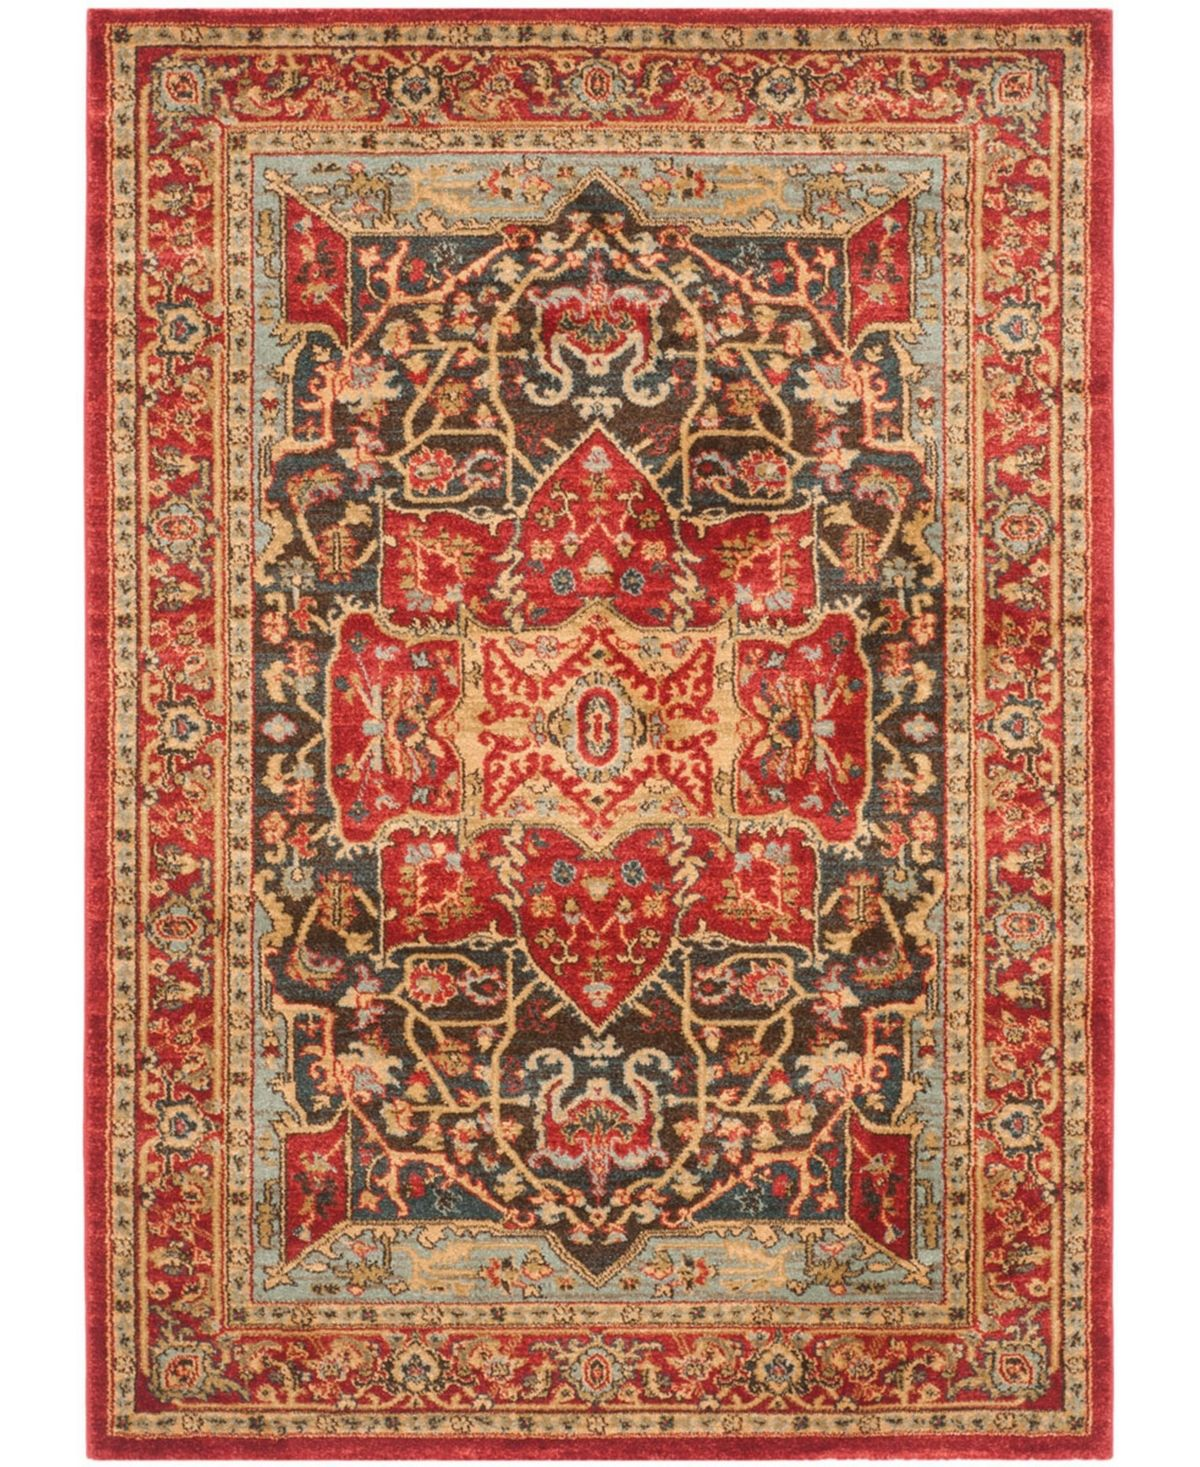 Safavieh Mahal Red 10 X 14 Area Rug Red Area Rugs Rugs Safavieh